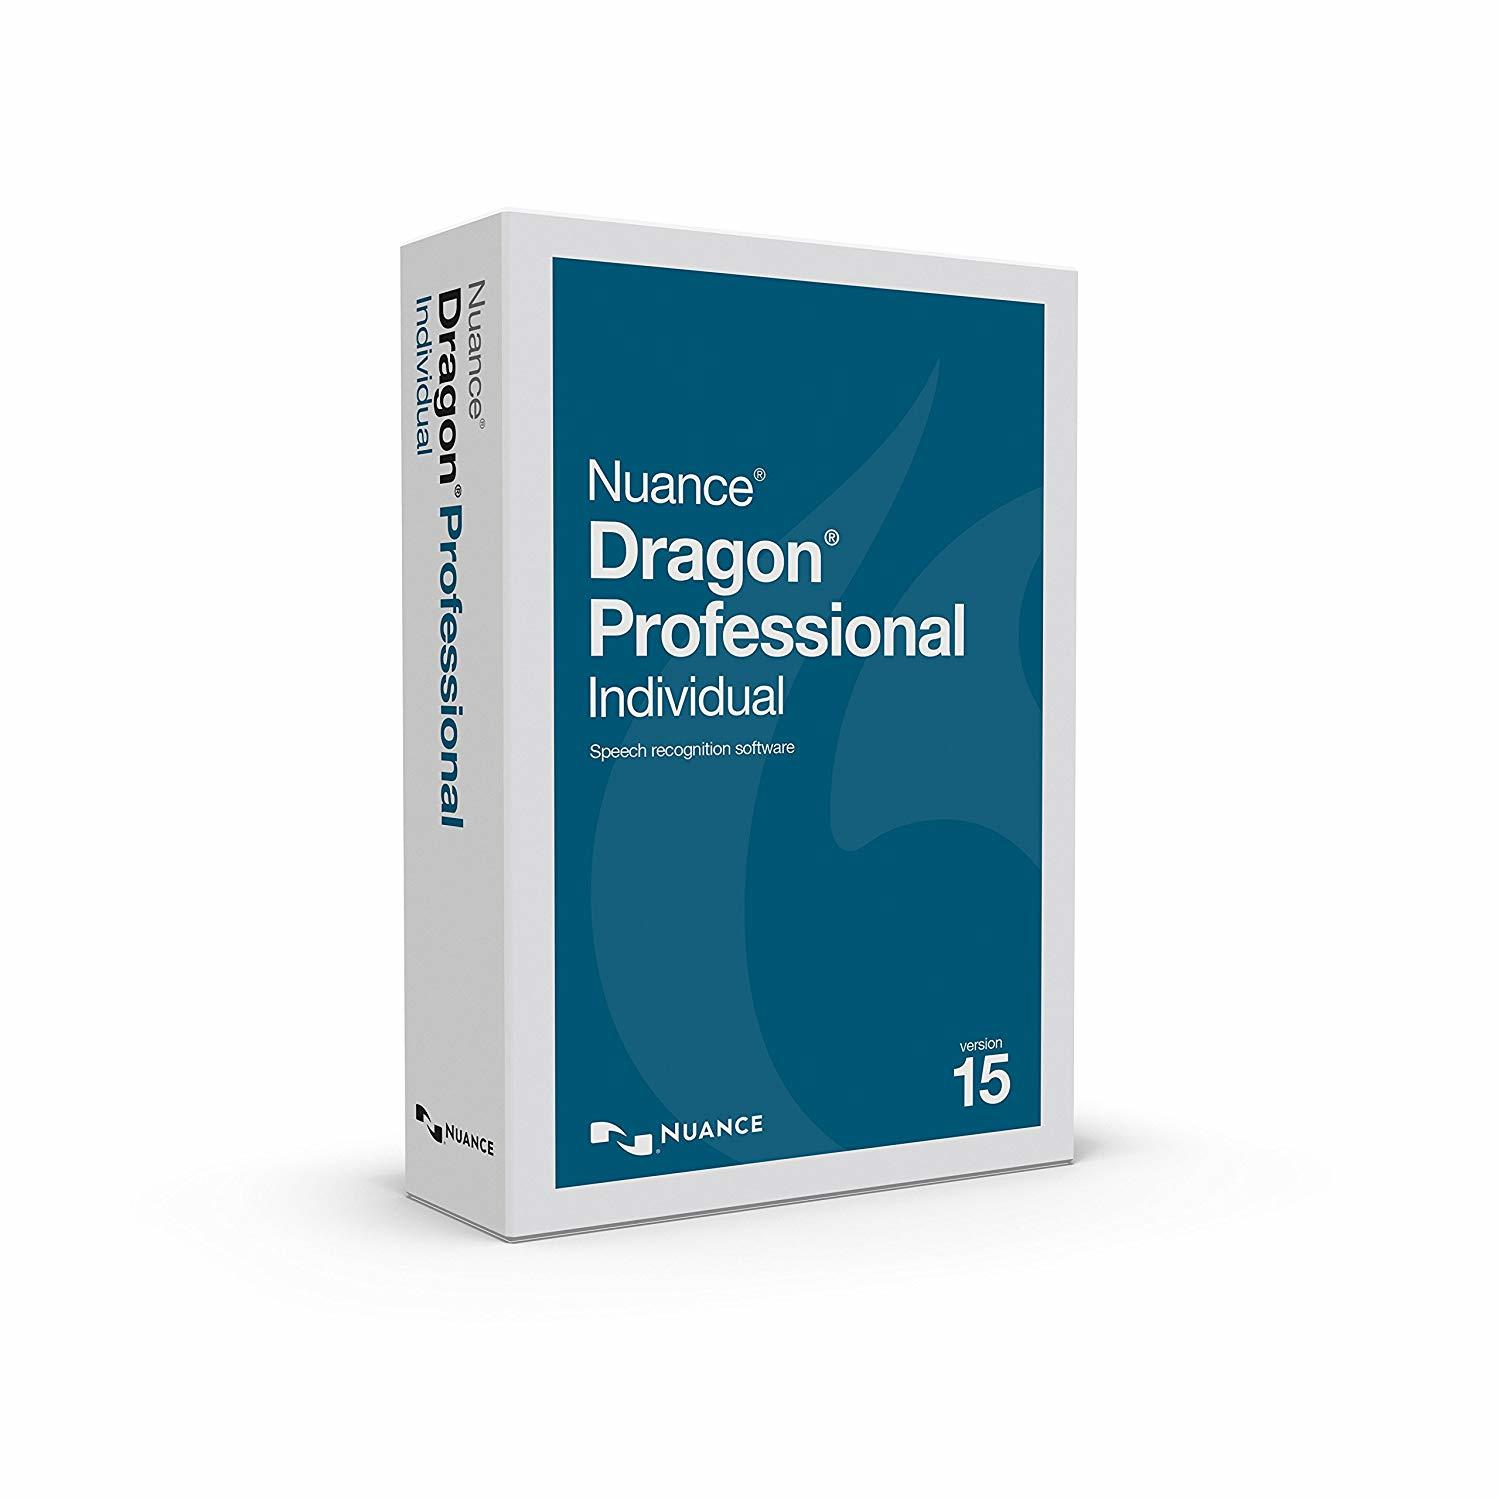 The box of Dragon Professional Individual Version 15